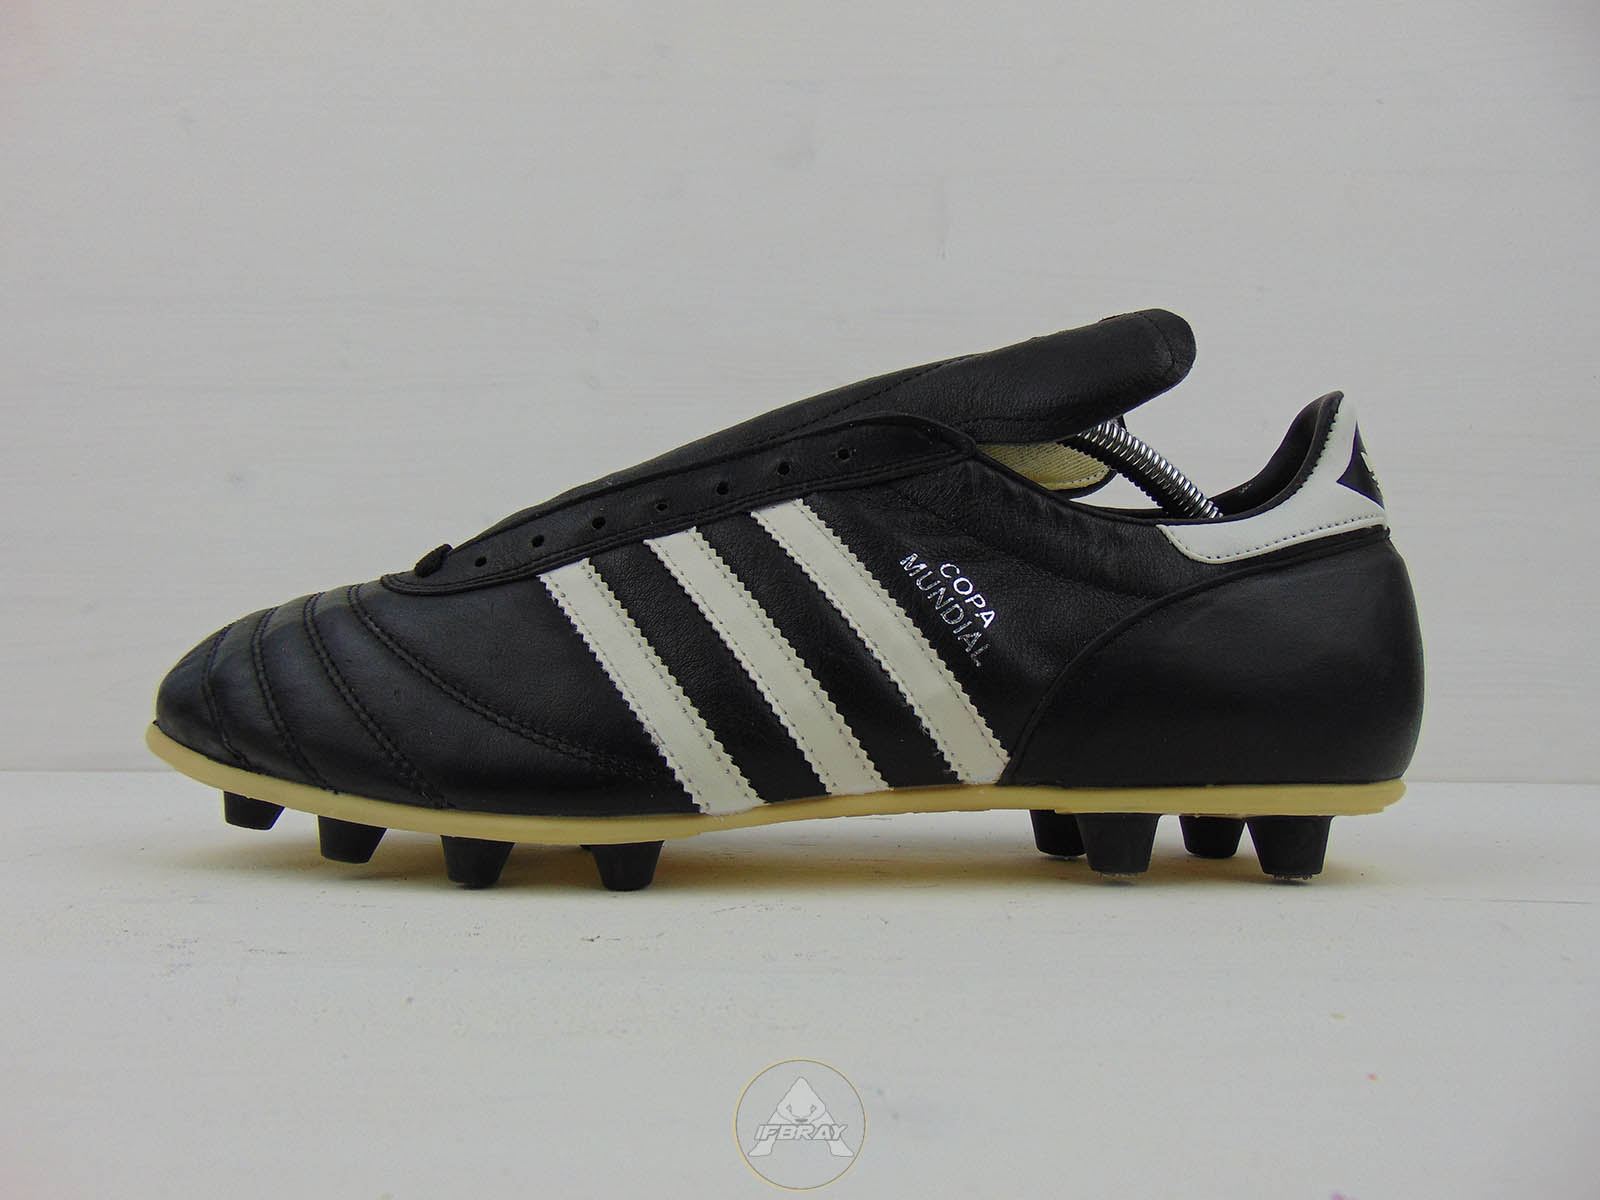 vintage 80 adidas copa mundial made in west germany ifbray. Black Bedroom Furniture Sets. Home Design Ideas